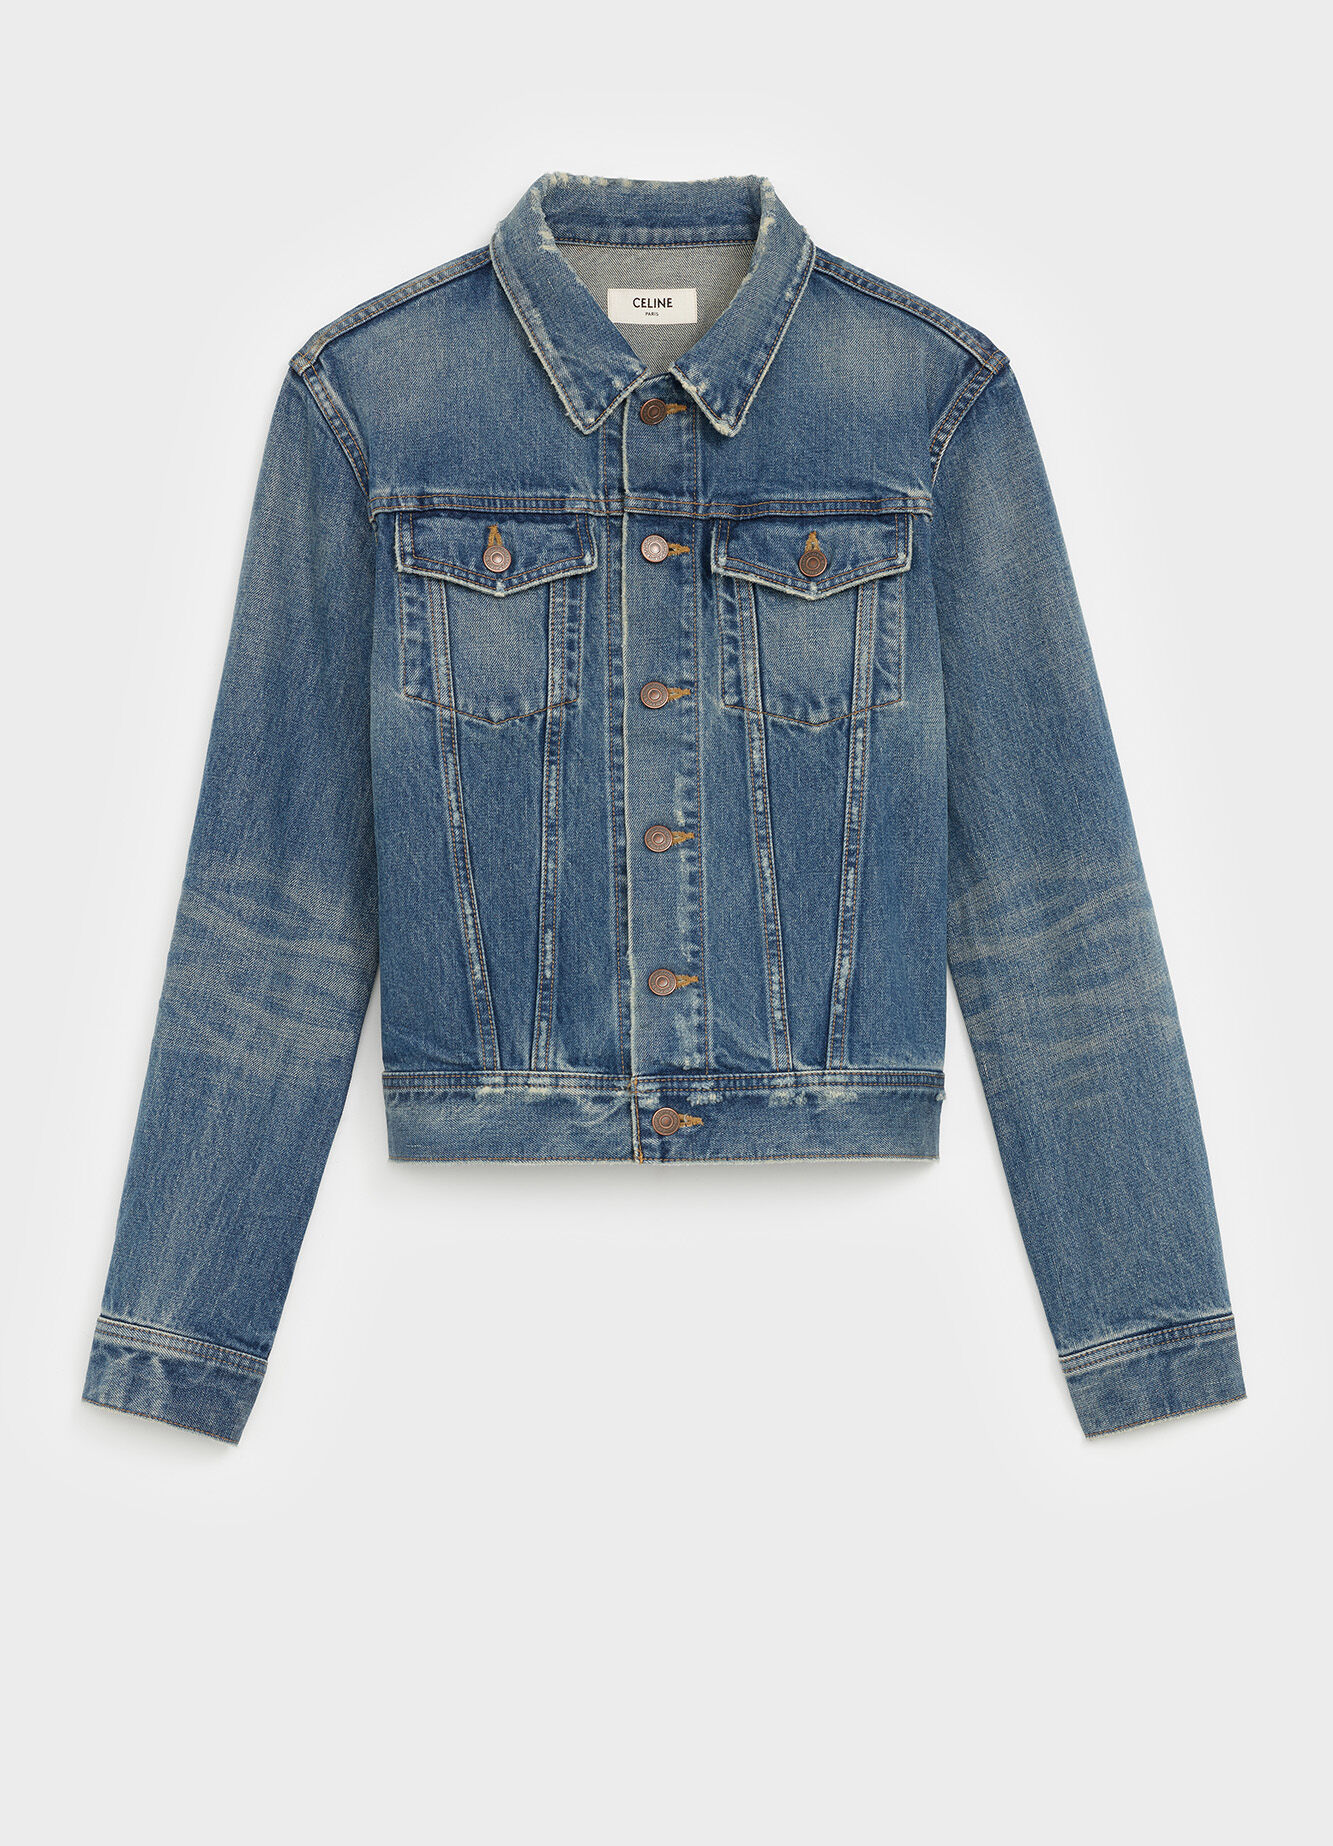 CELINE TRUCKER JACKET IN DENIM